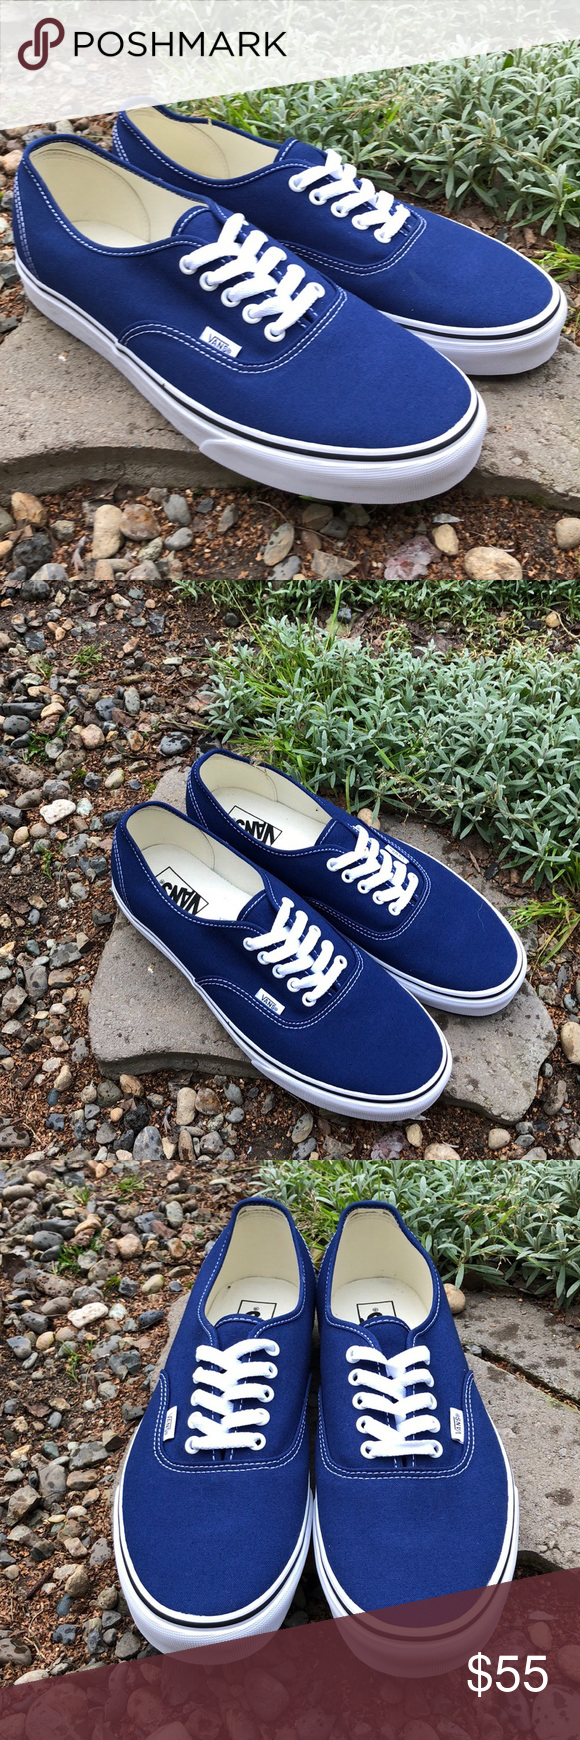 5d3a6c7fa6 Vans Authentic Estate Blue Shoes Vans Authentic Estate Blue Shoes New Men's  Size: 11.5 Color: Estate Blue These great shoes are the perfect addition to  any ...